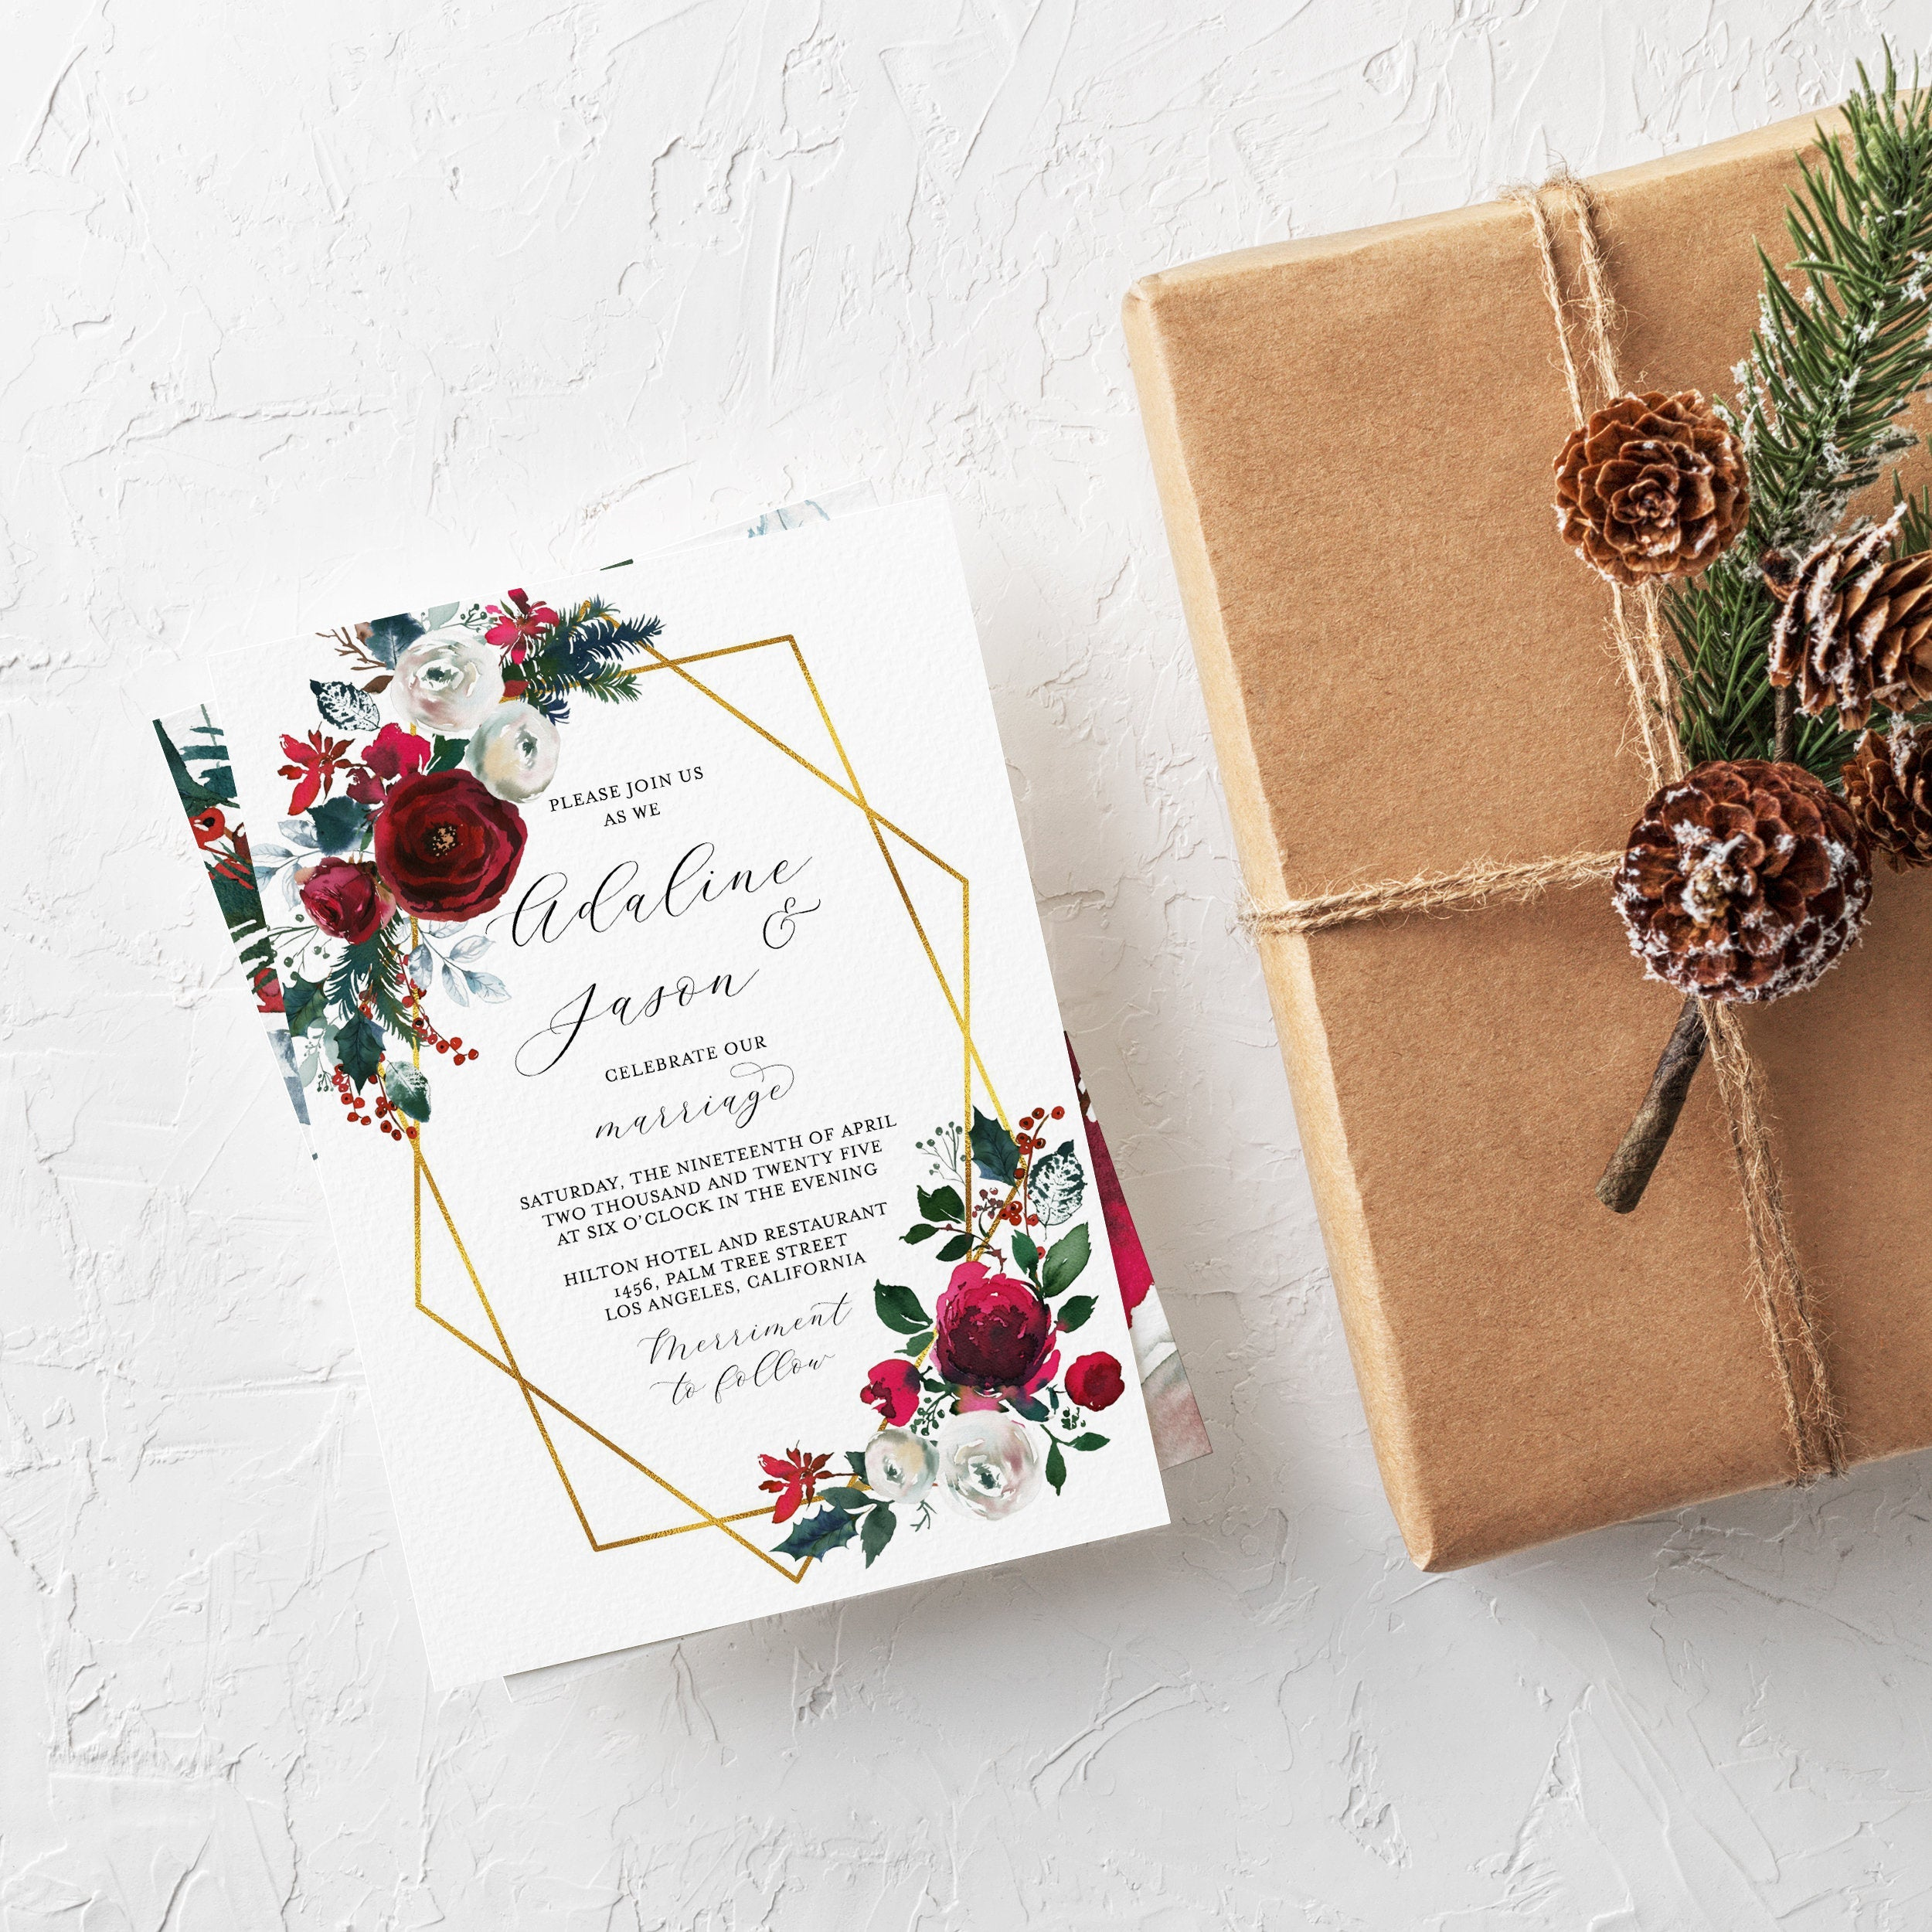 Burgundy Wedding Christmas Invitation Template Printable DIY Instant Download Editable Wedding Invites Geometric - Ada